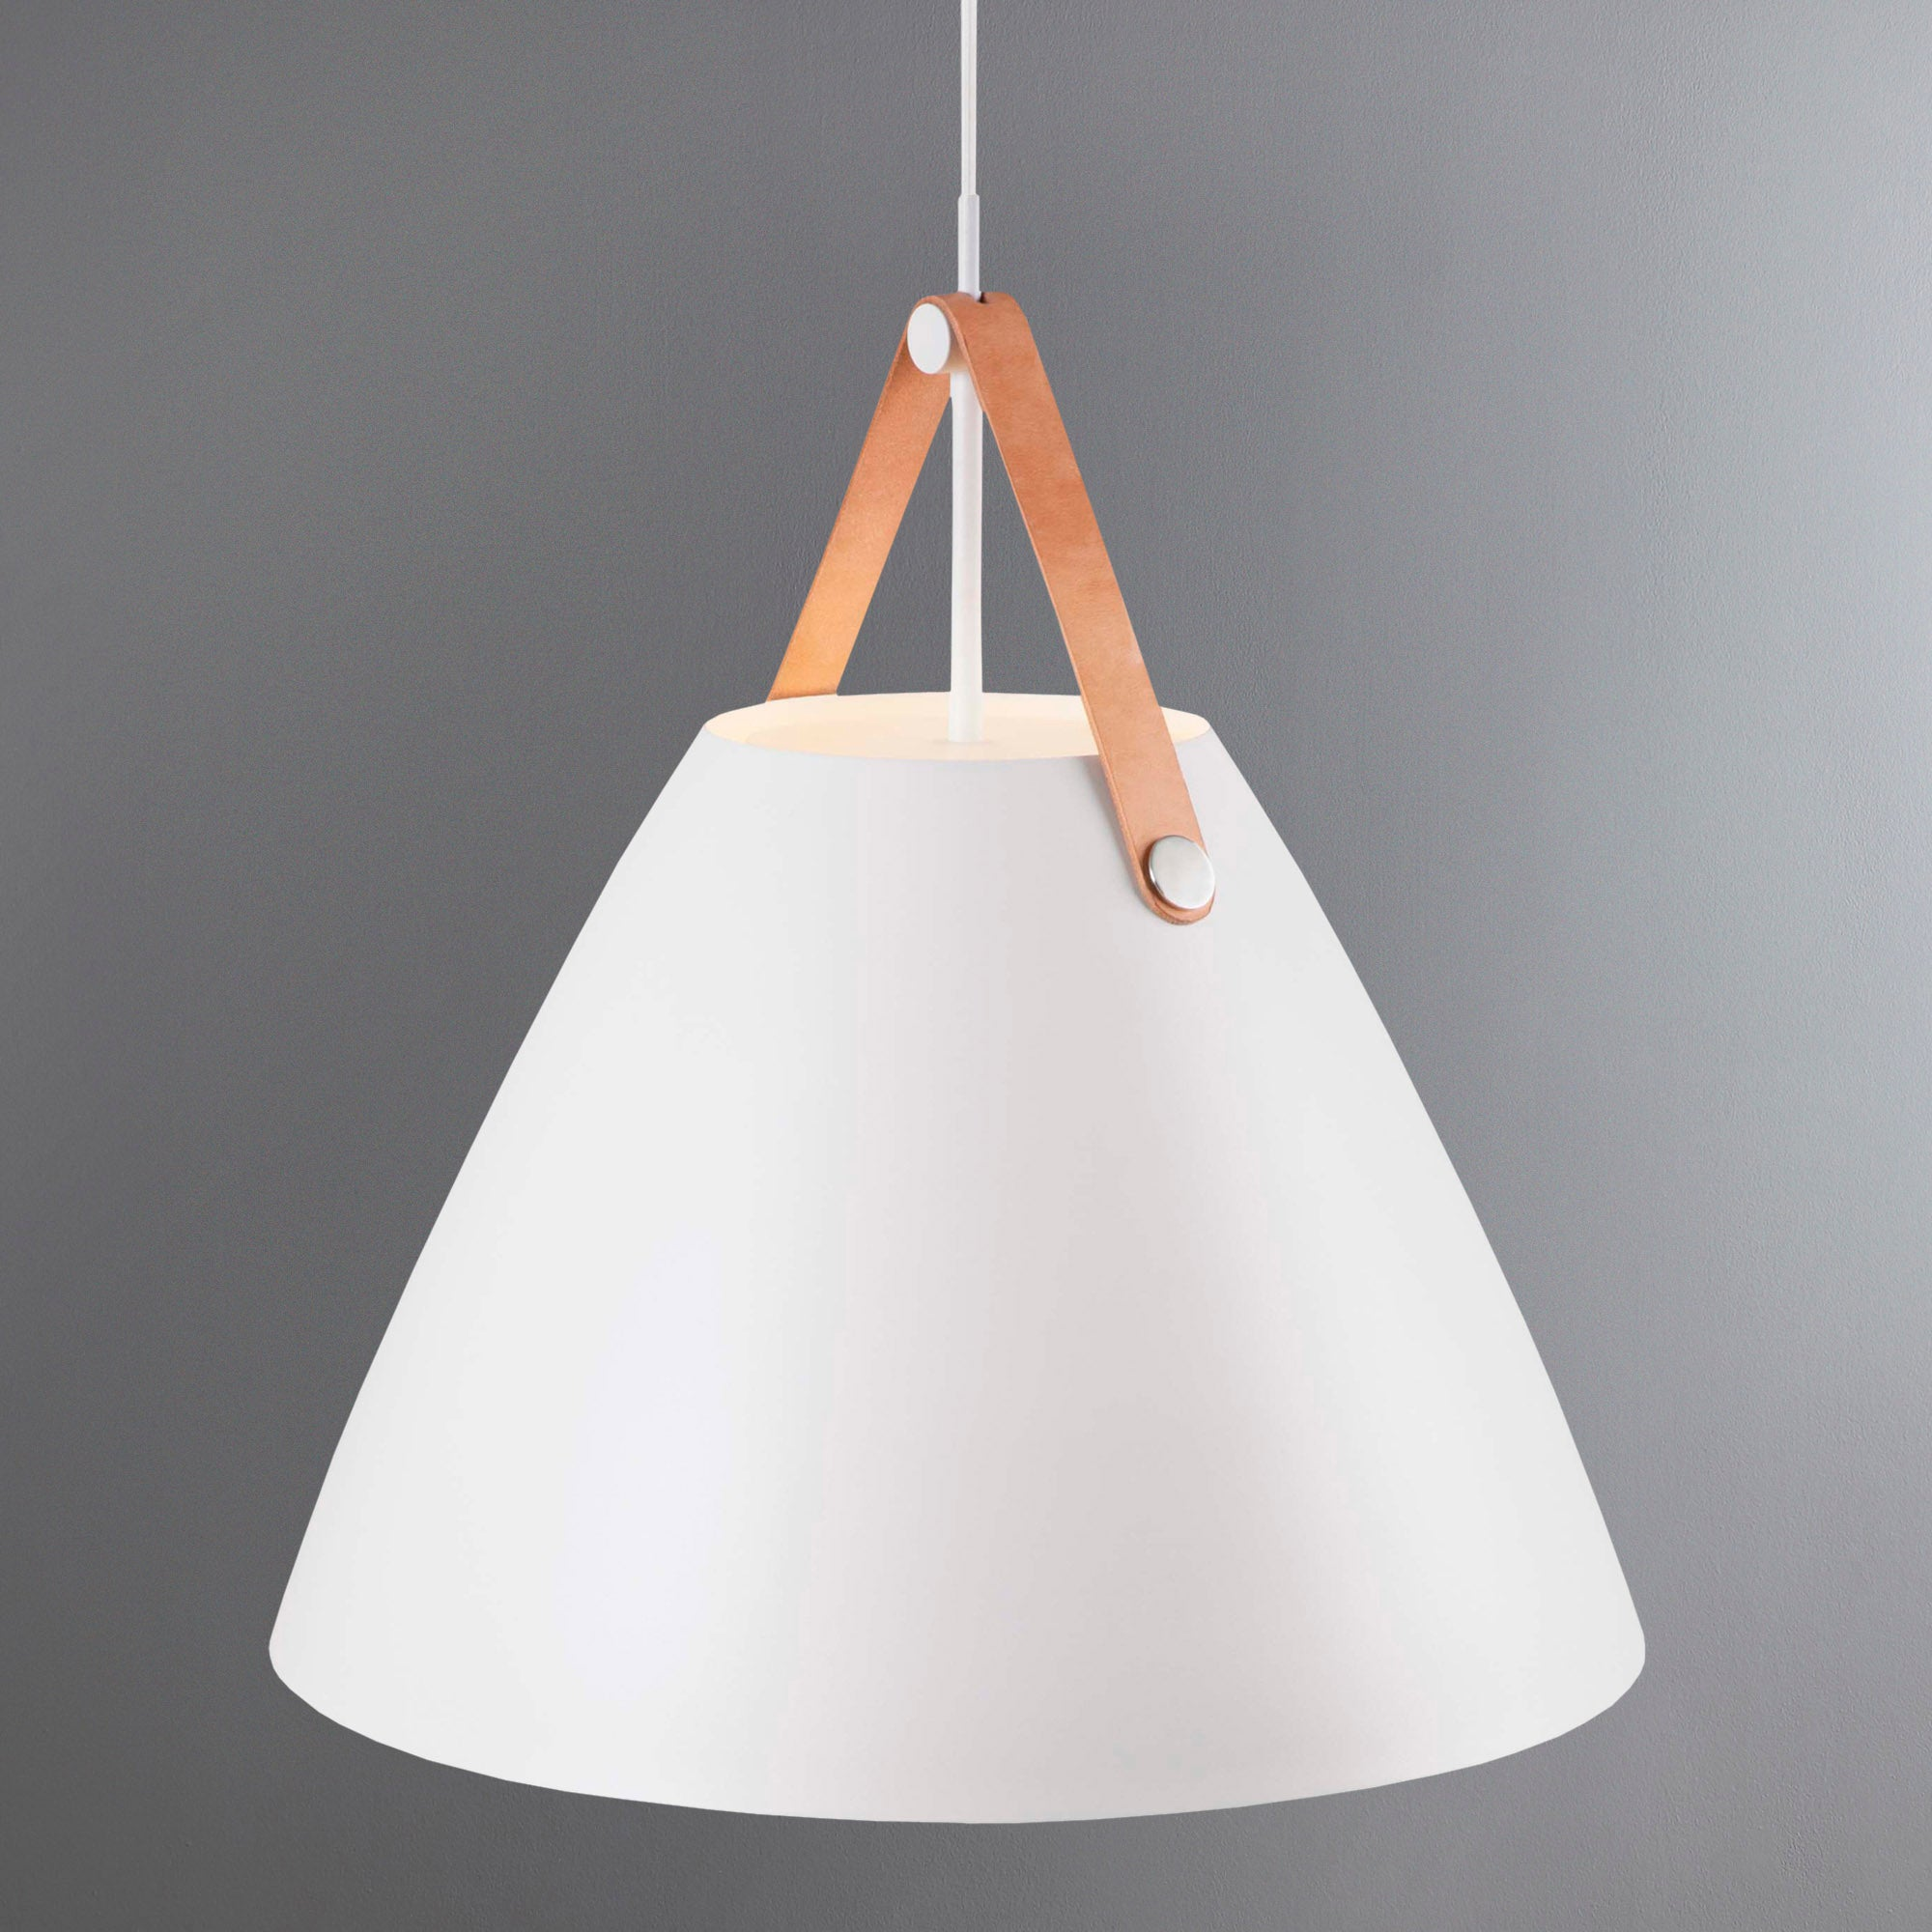 Photo of Strap large white pendant light fitting white